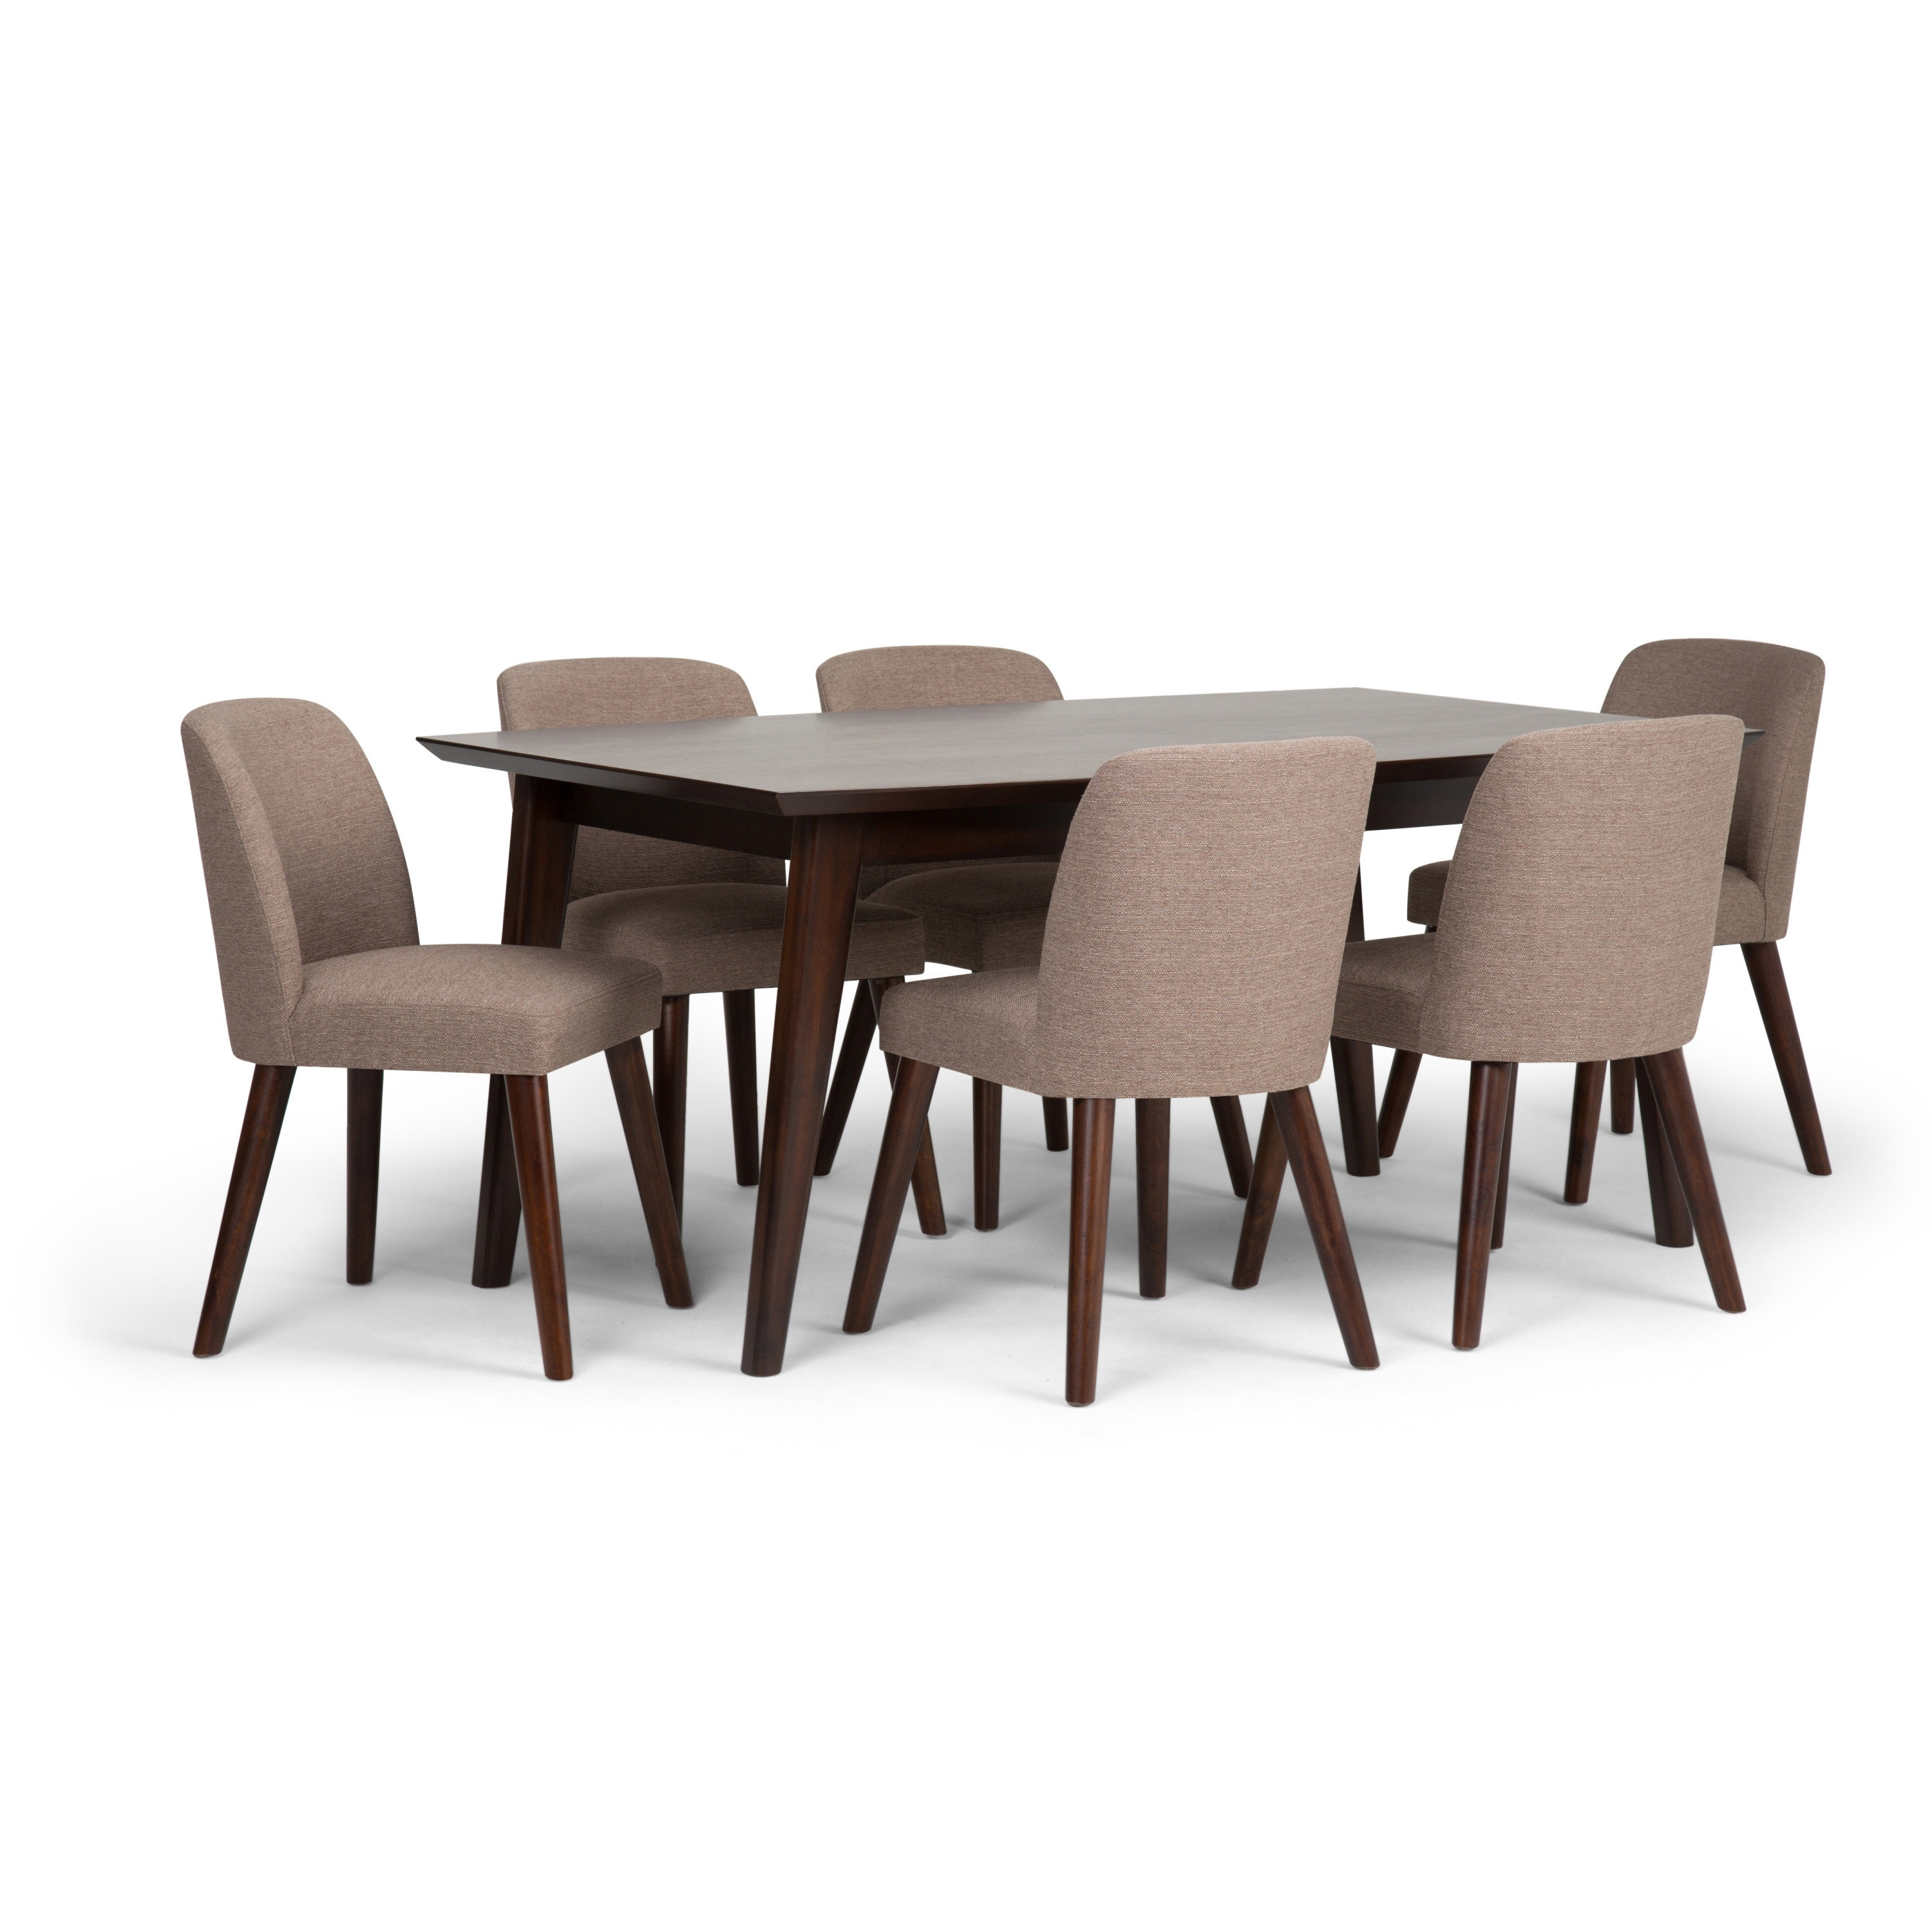 Simpli Home Emery 7 Piece Solid Wood Dining Set | Wayfair Regarding Most Recent Walden 7 Piece Extension Dining Sets (Image 12 of 20)